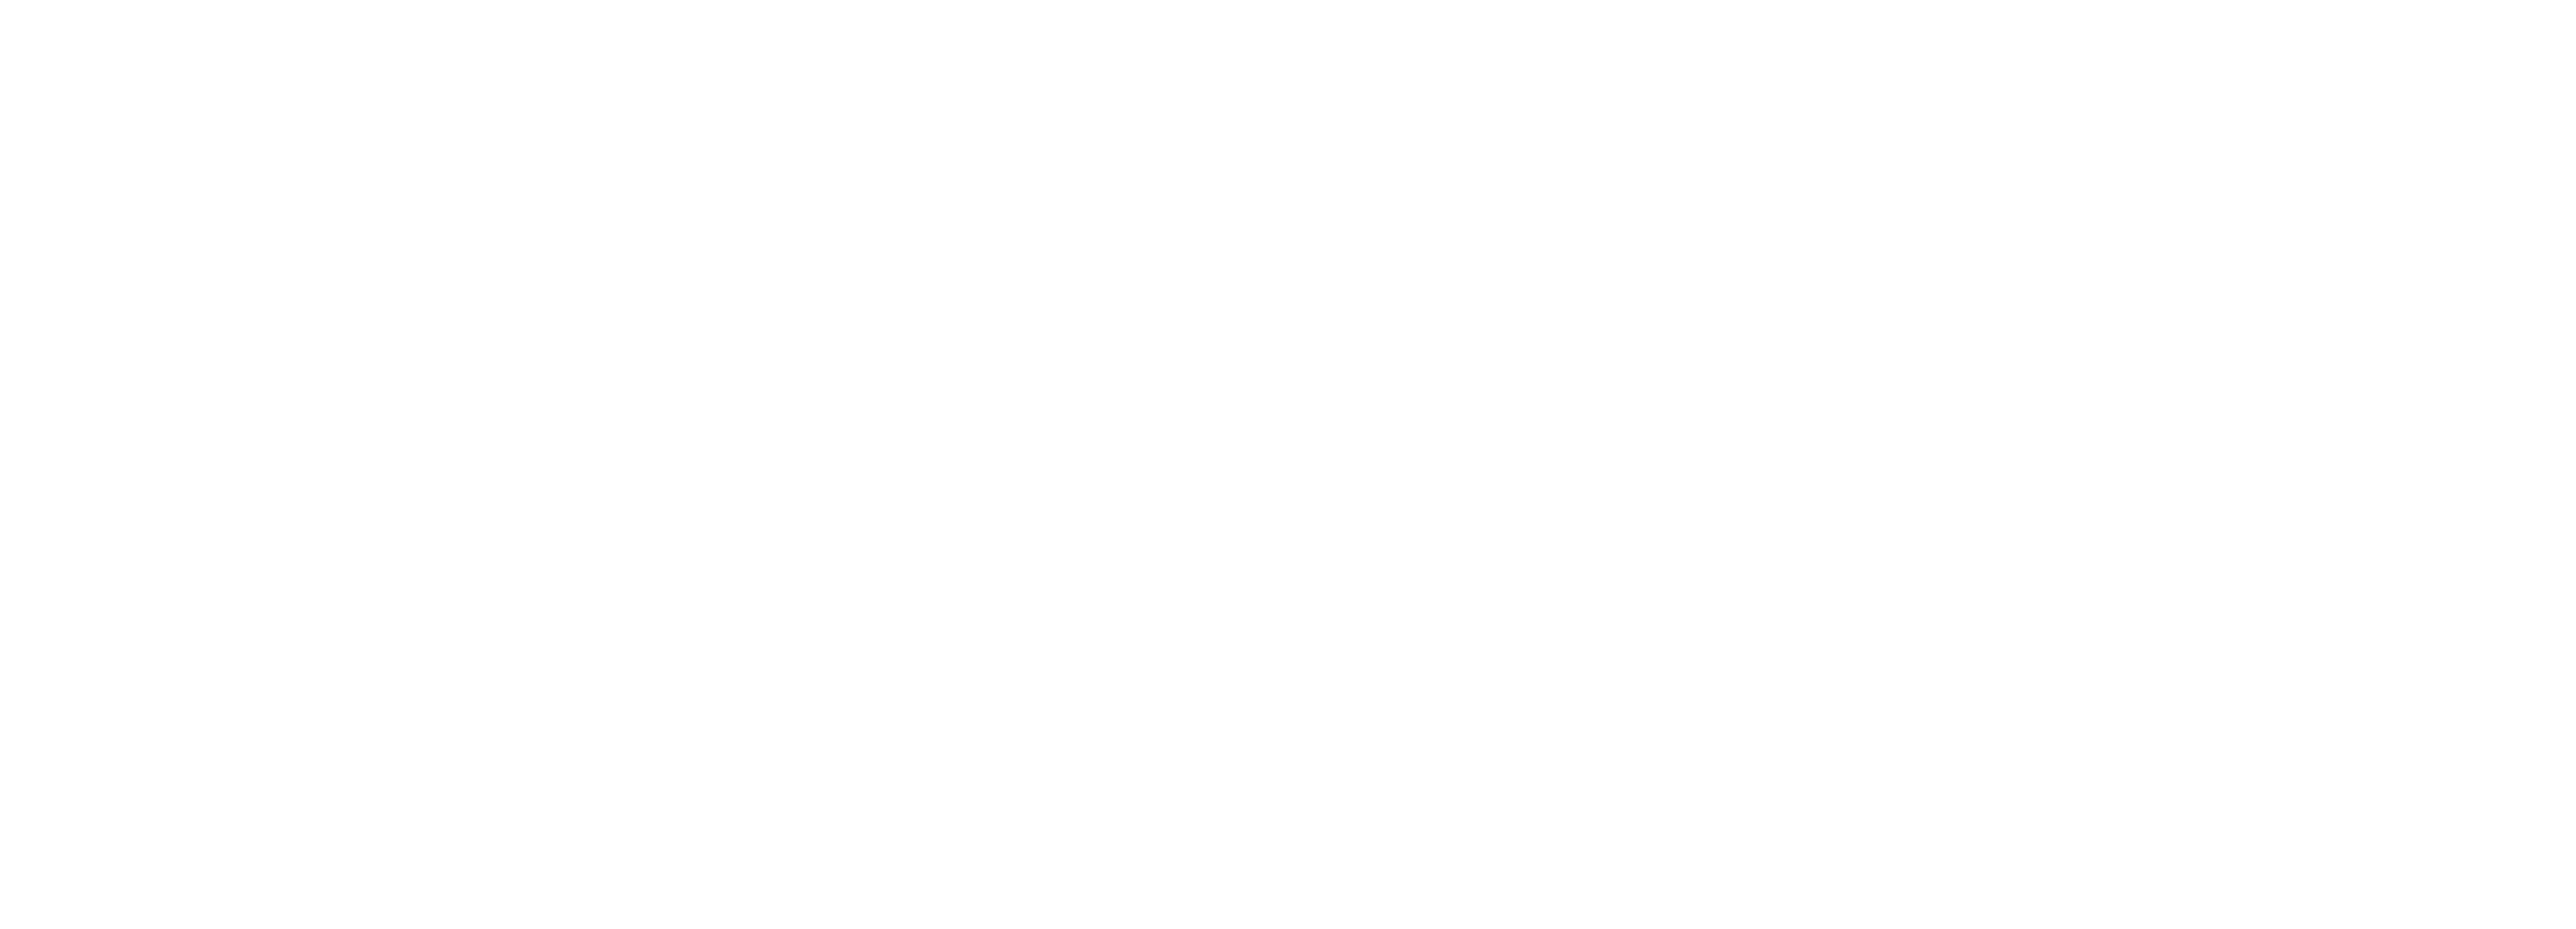 Hoffman's Florist & Greenhouse - Flower Delivery in Columbus, OH